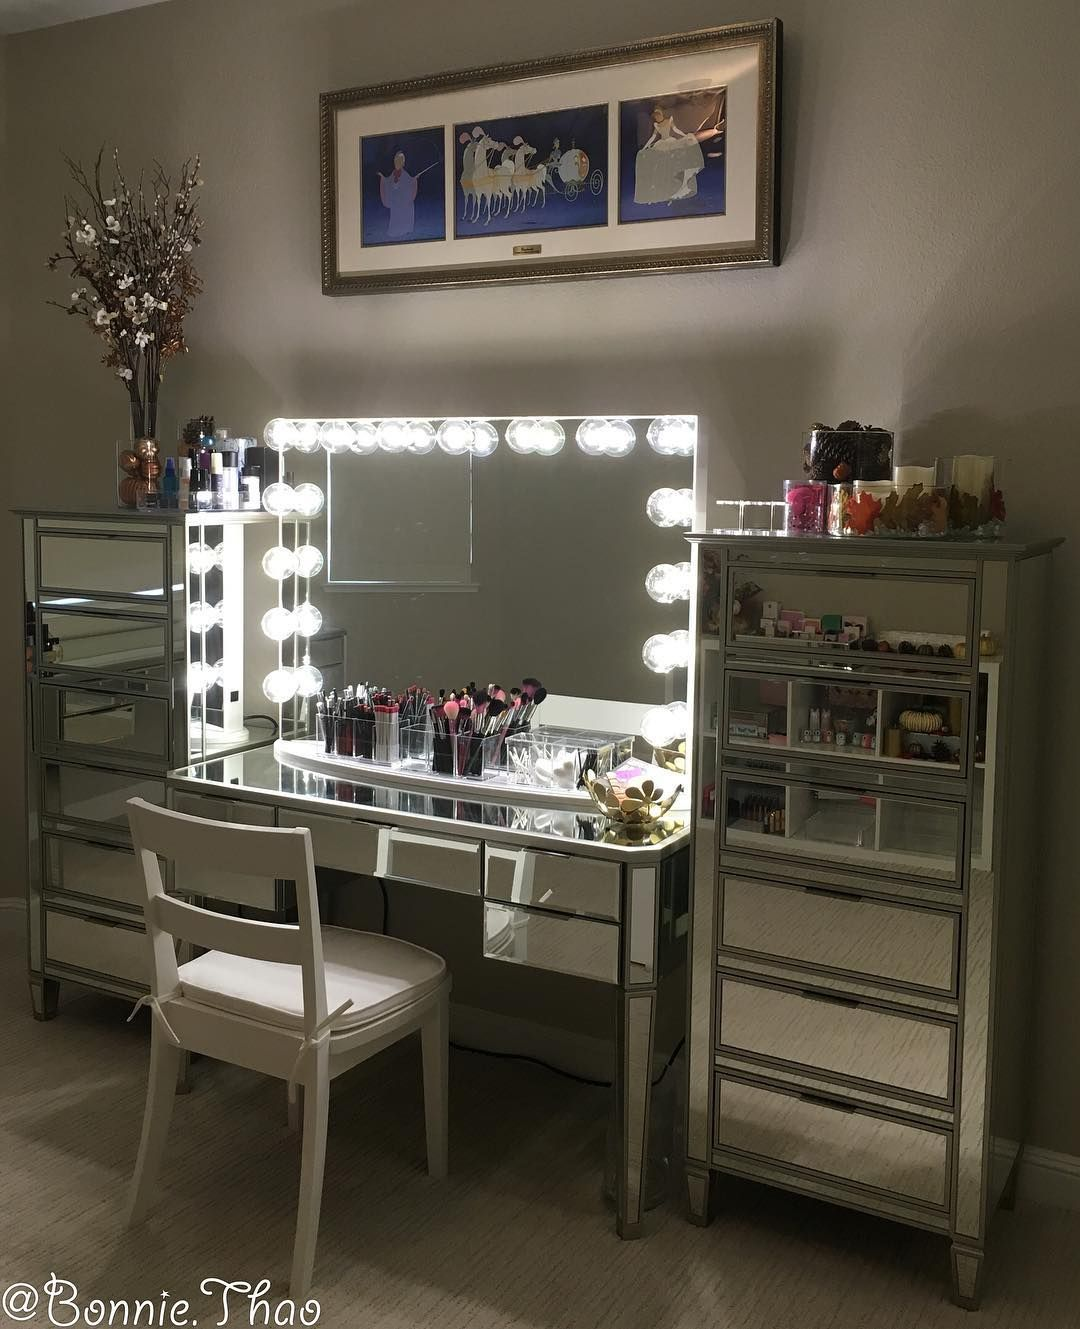 Hollywood vanity mirrors slayssentials show yourself in a new hollywood vanity mirrors slayssentials show yourself in a new light share yours solutioingenieria Images